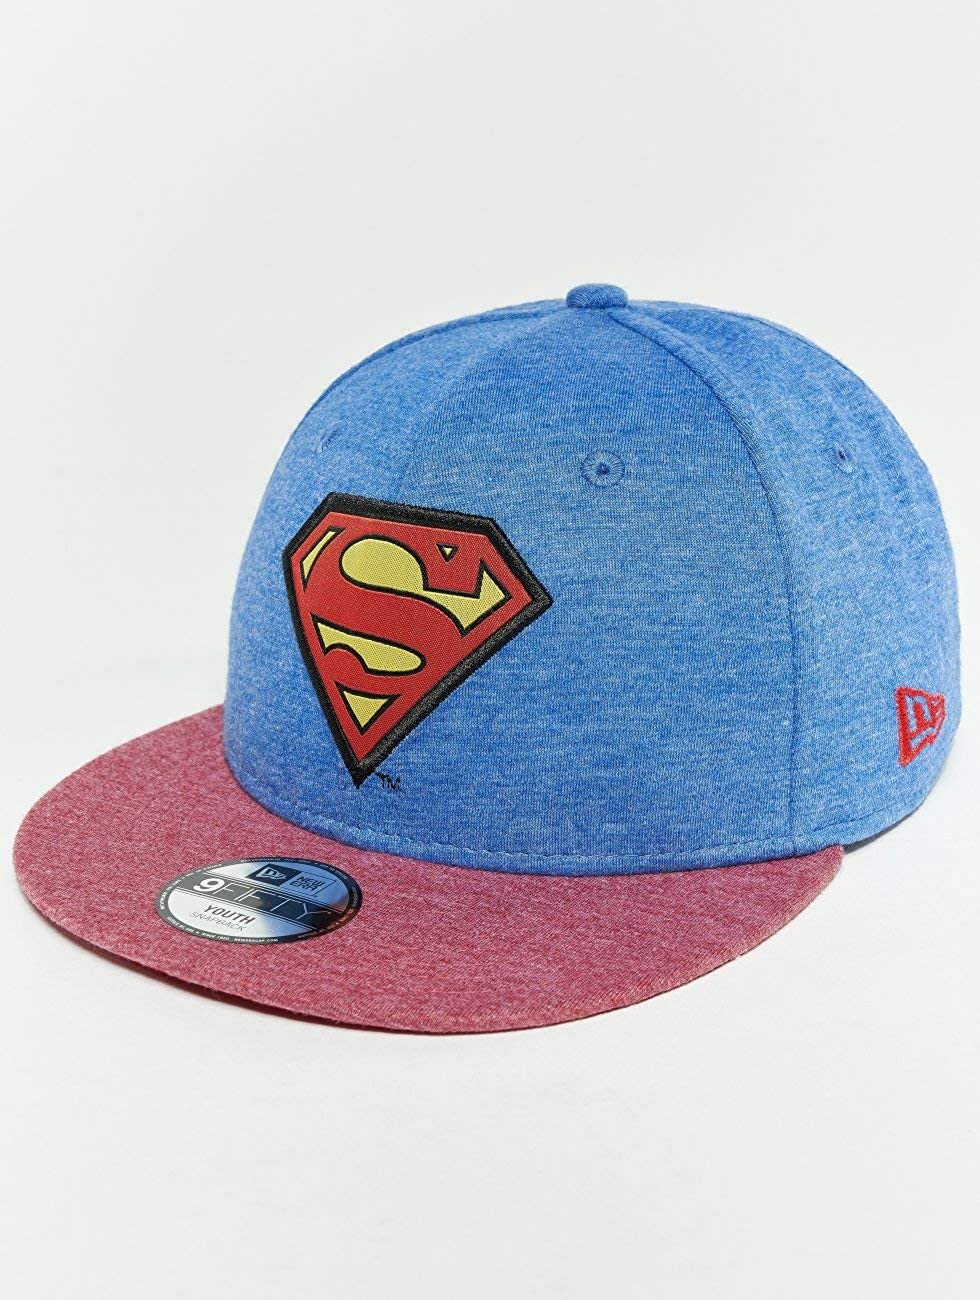 New Era Era Era - Superman - Dc Comics 9fifty Snapback - Character Jersey - Blue 80635963